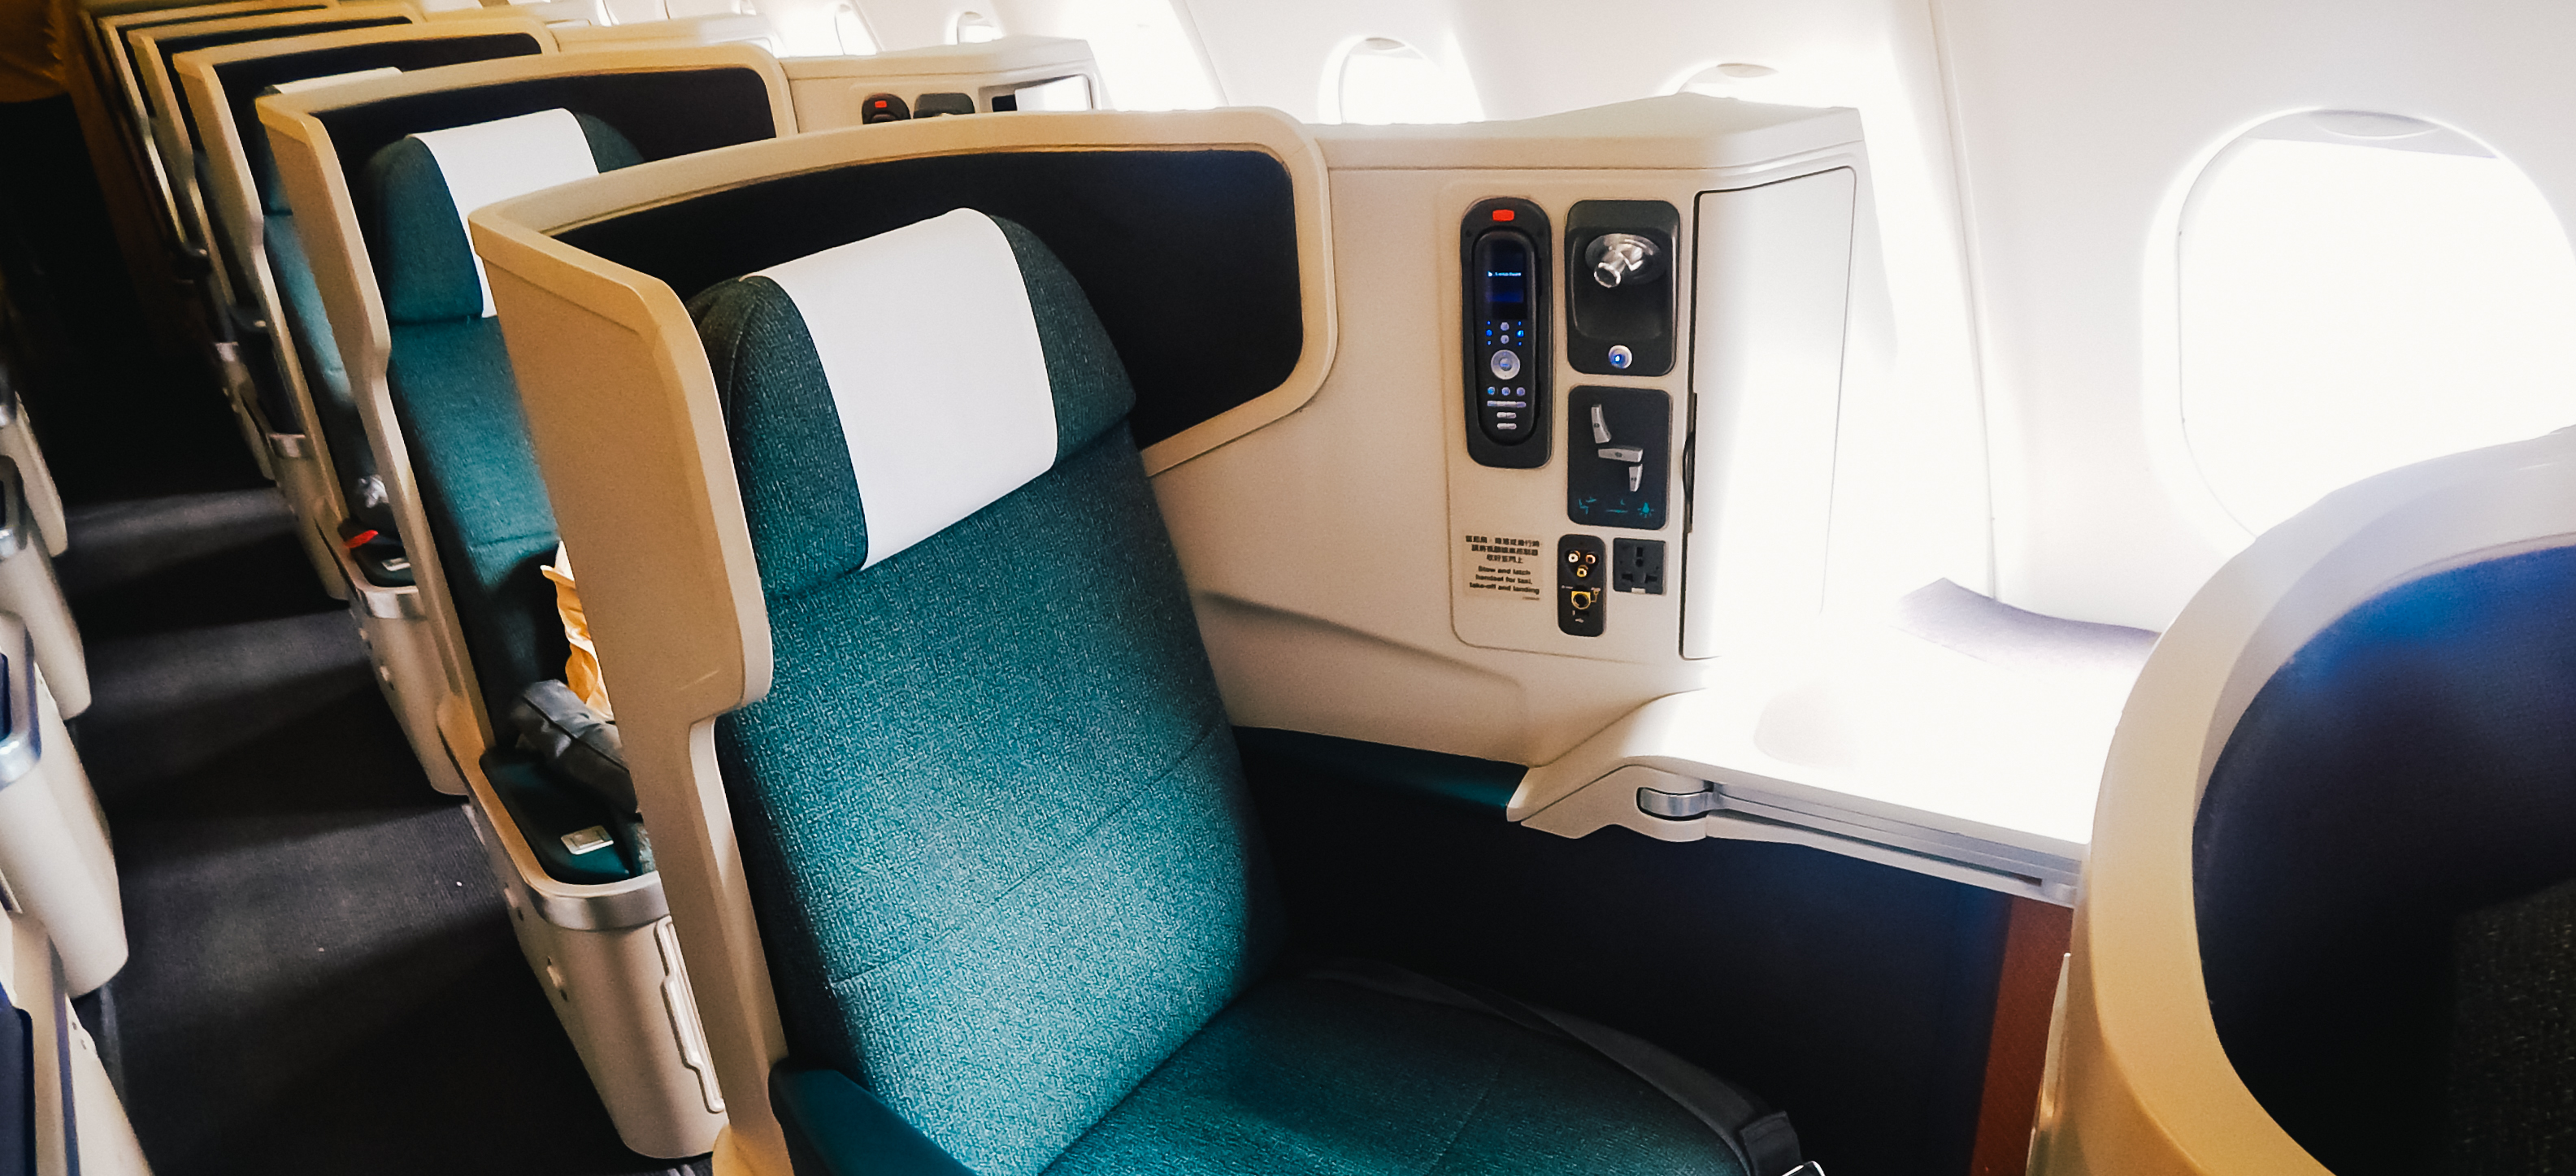 What Are The Different Airline Classes